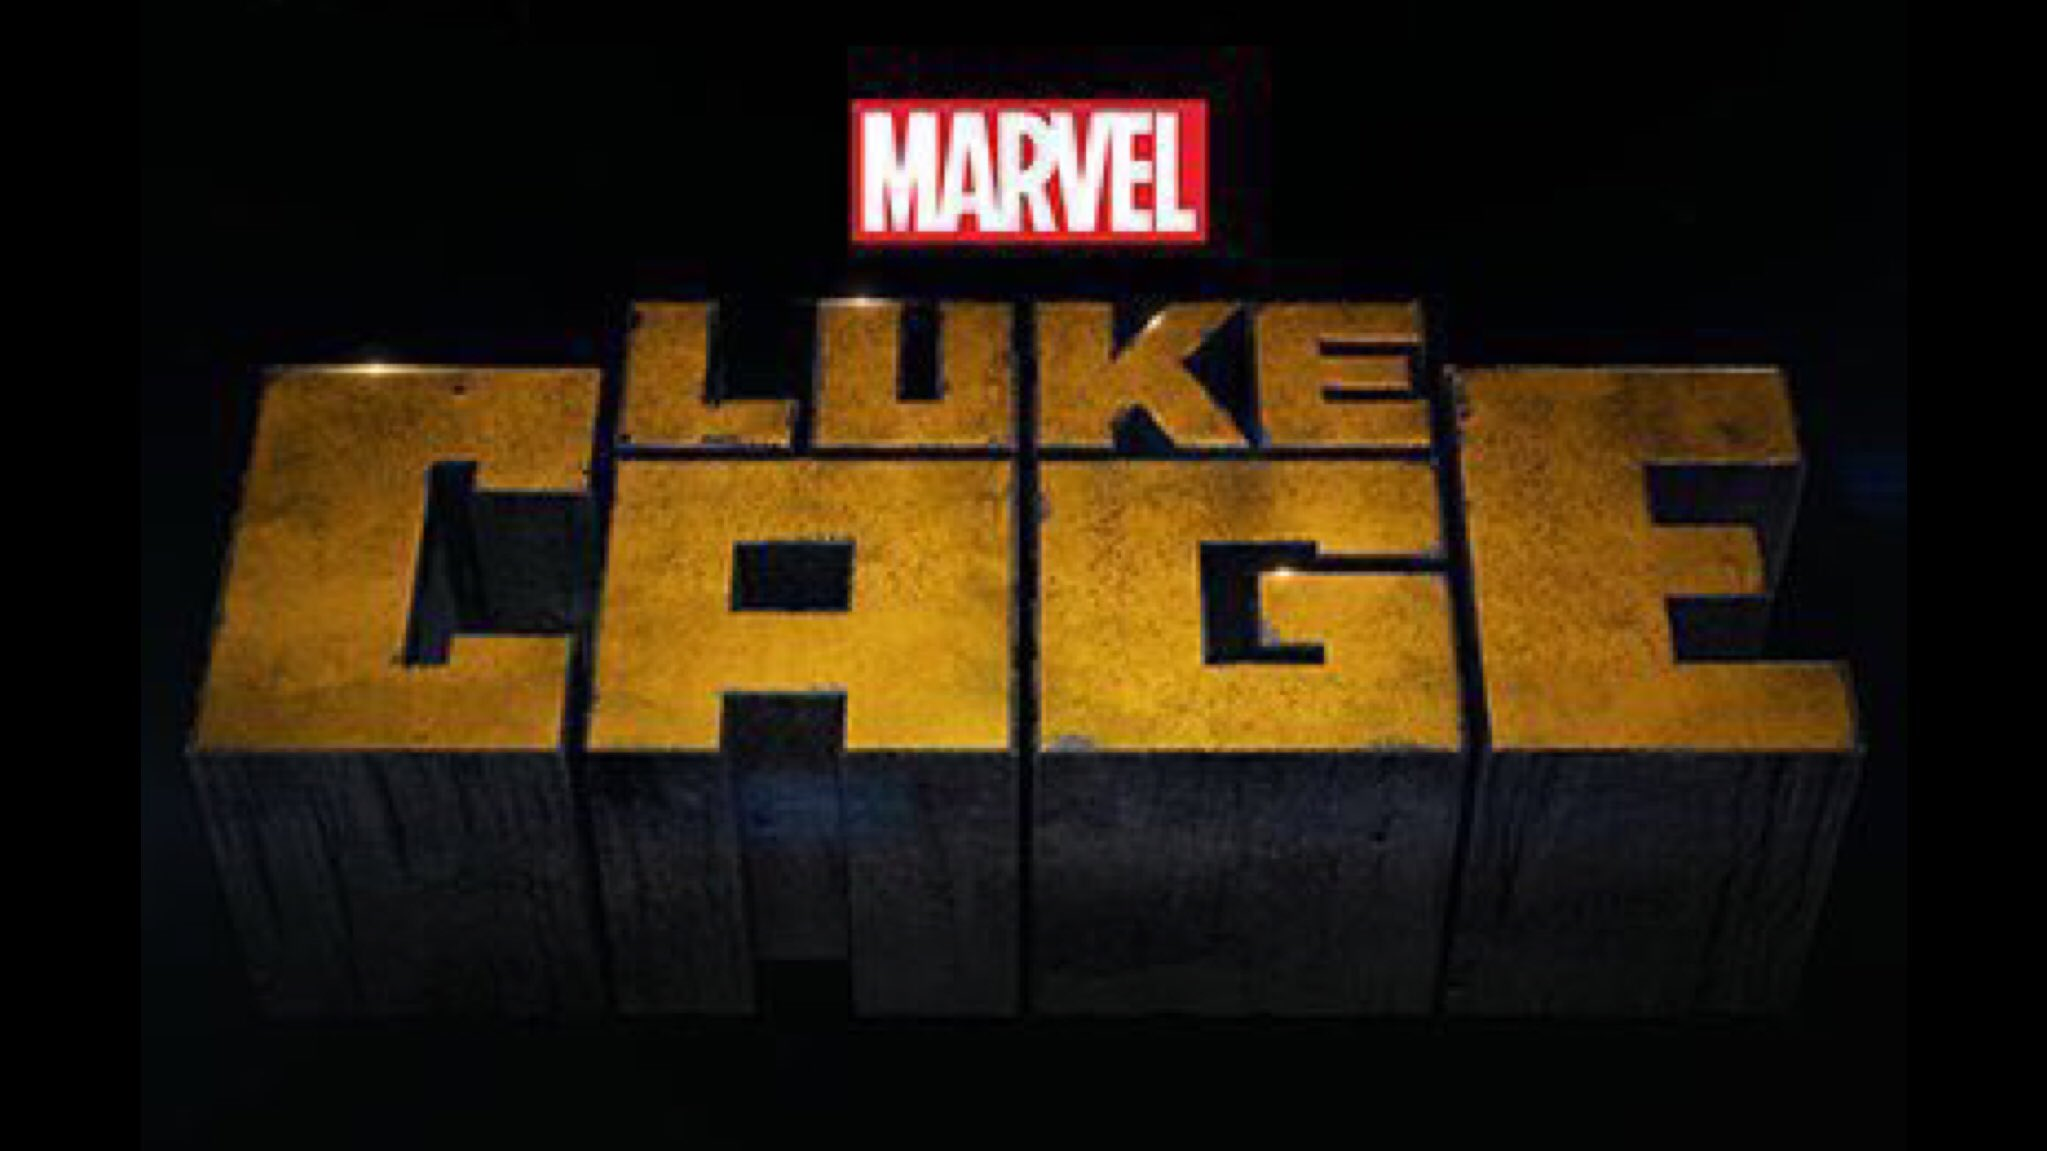 Starting with #LukeCage: Moment of Truth (S1.E1) https://t.co/7V3zeZ2WPY of course https://t.co/pFELHizop1